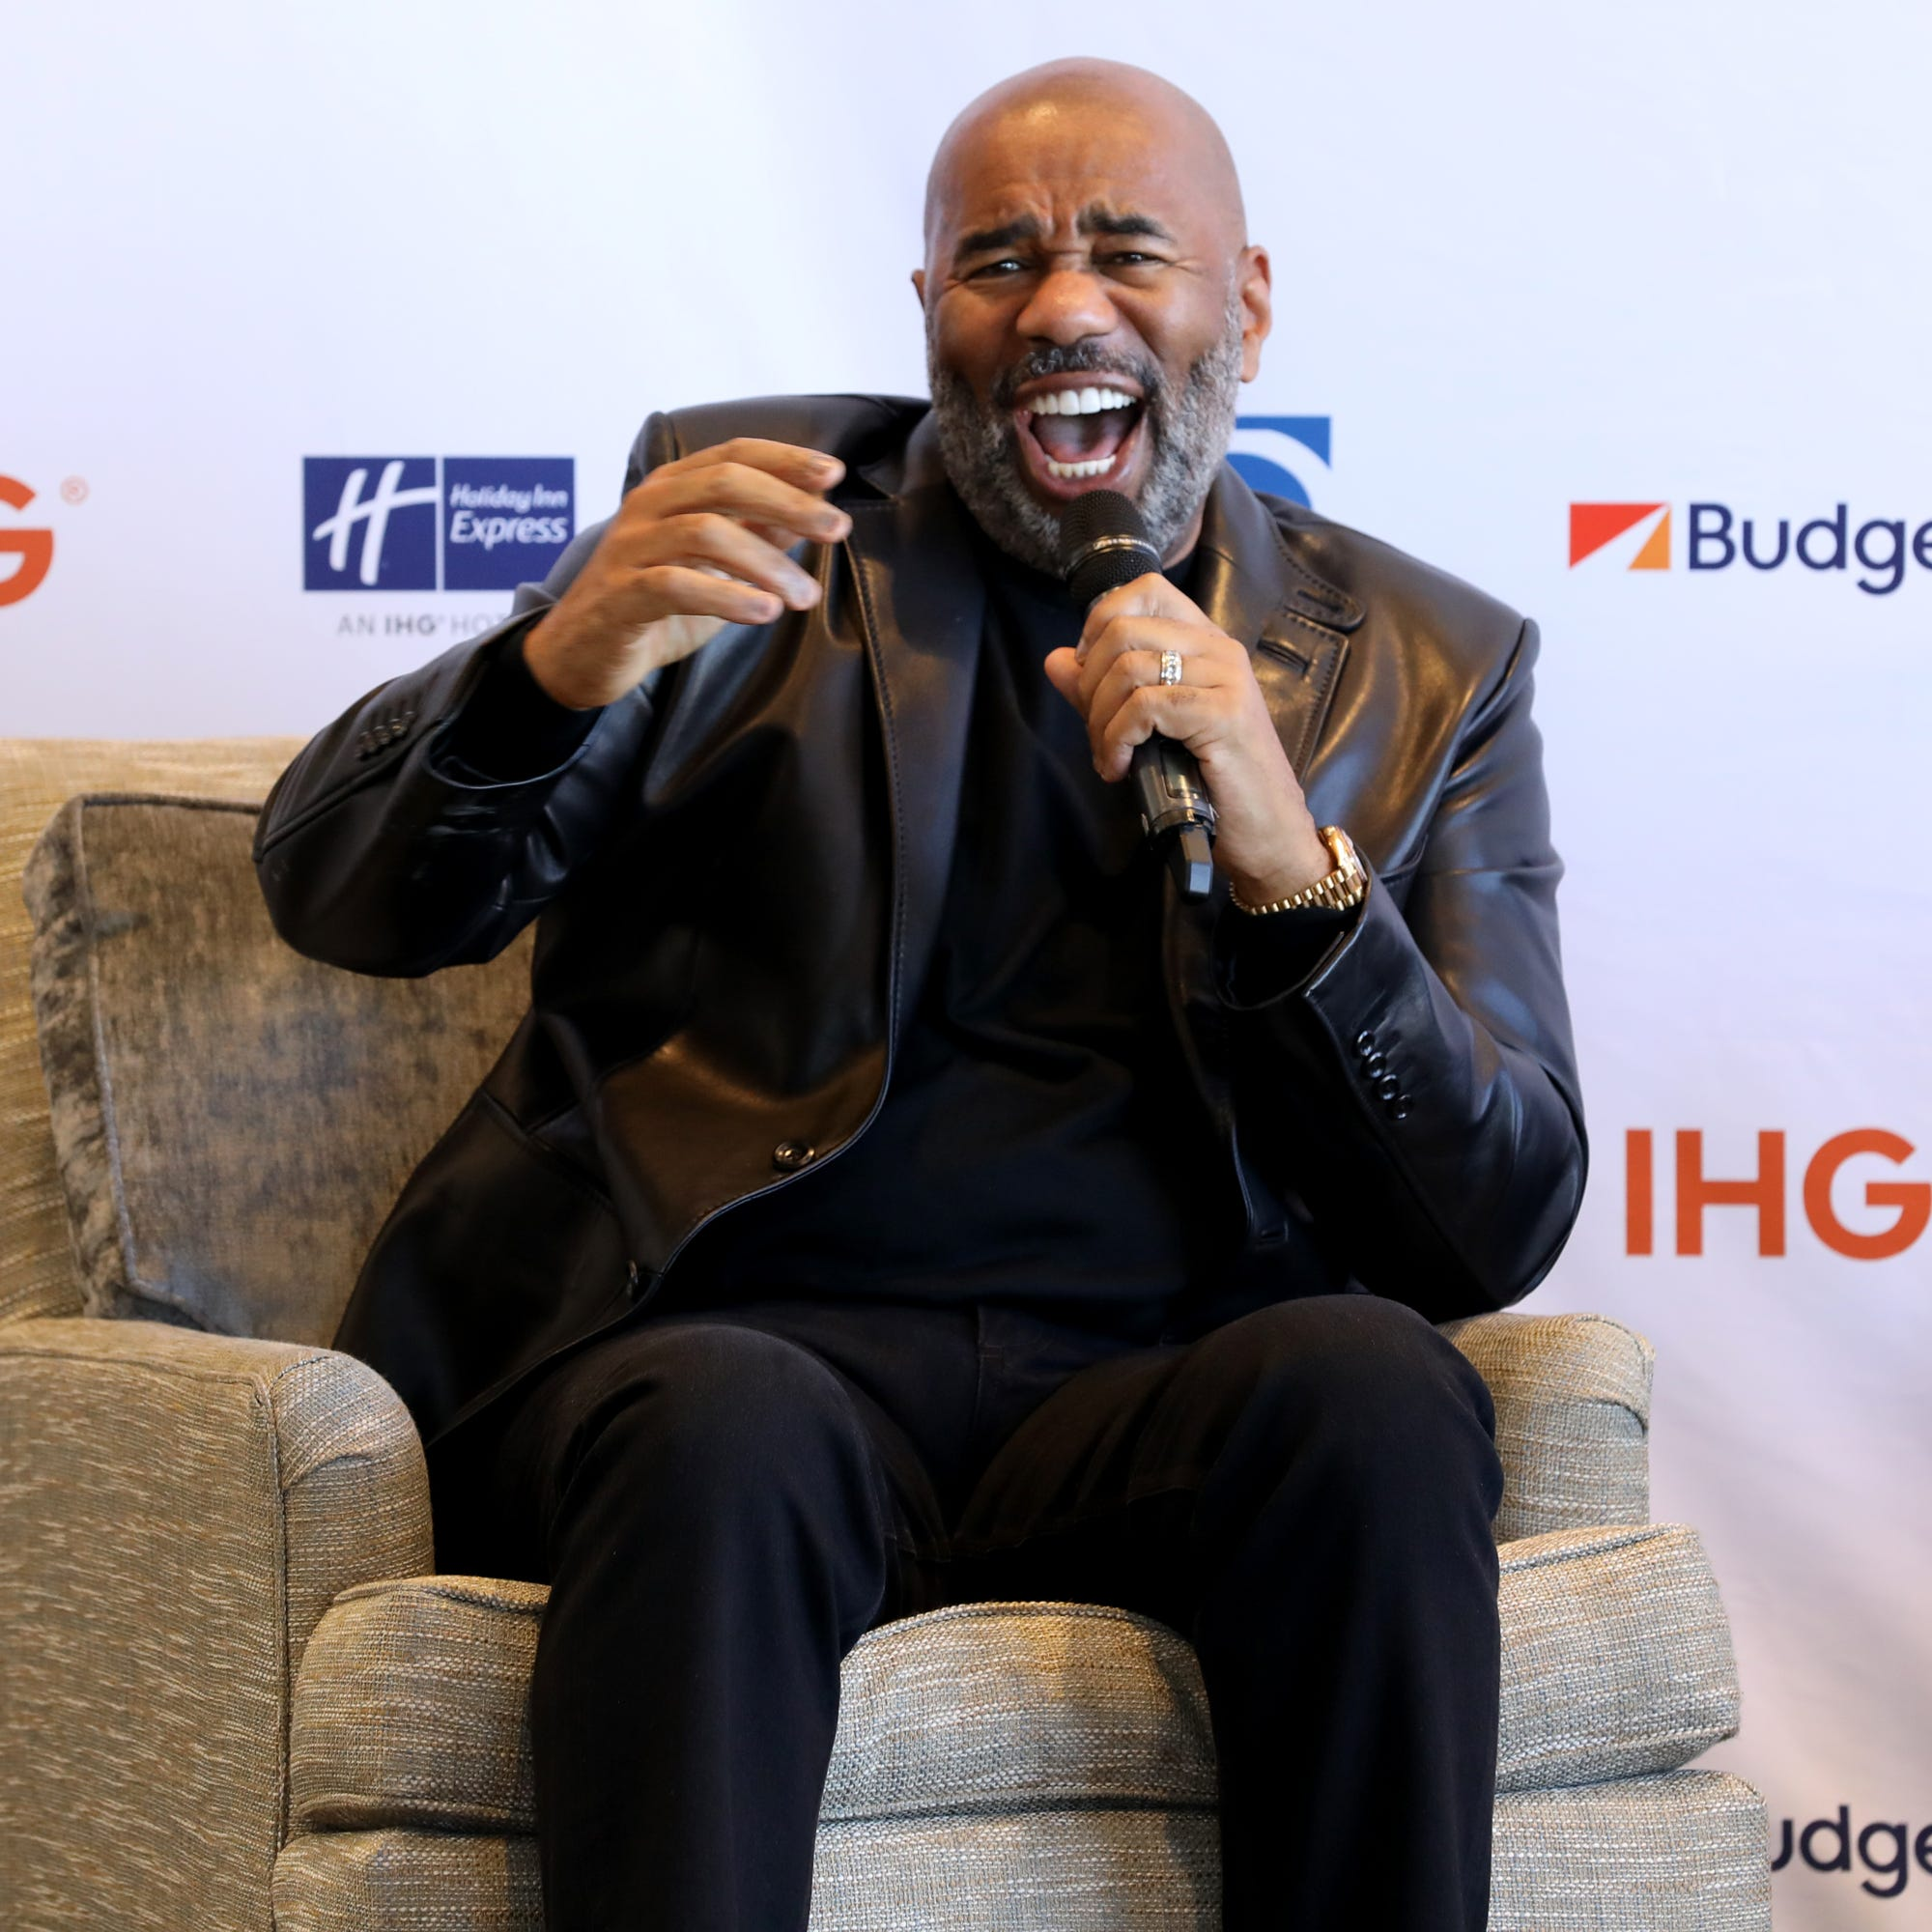 """Steve Harvey says his on-air spat with Mo'Nique has taught him that he """"can't get into heated discussions"""" and to choose his words more carefully."""